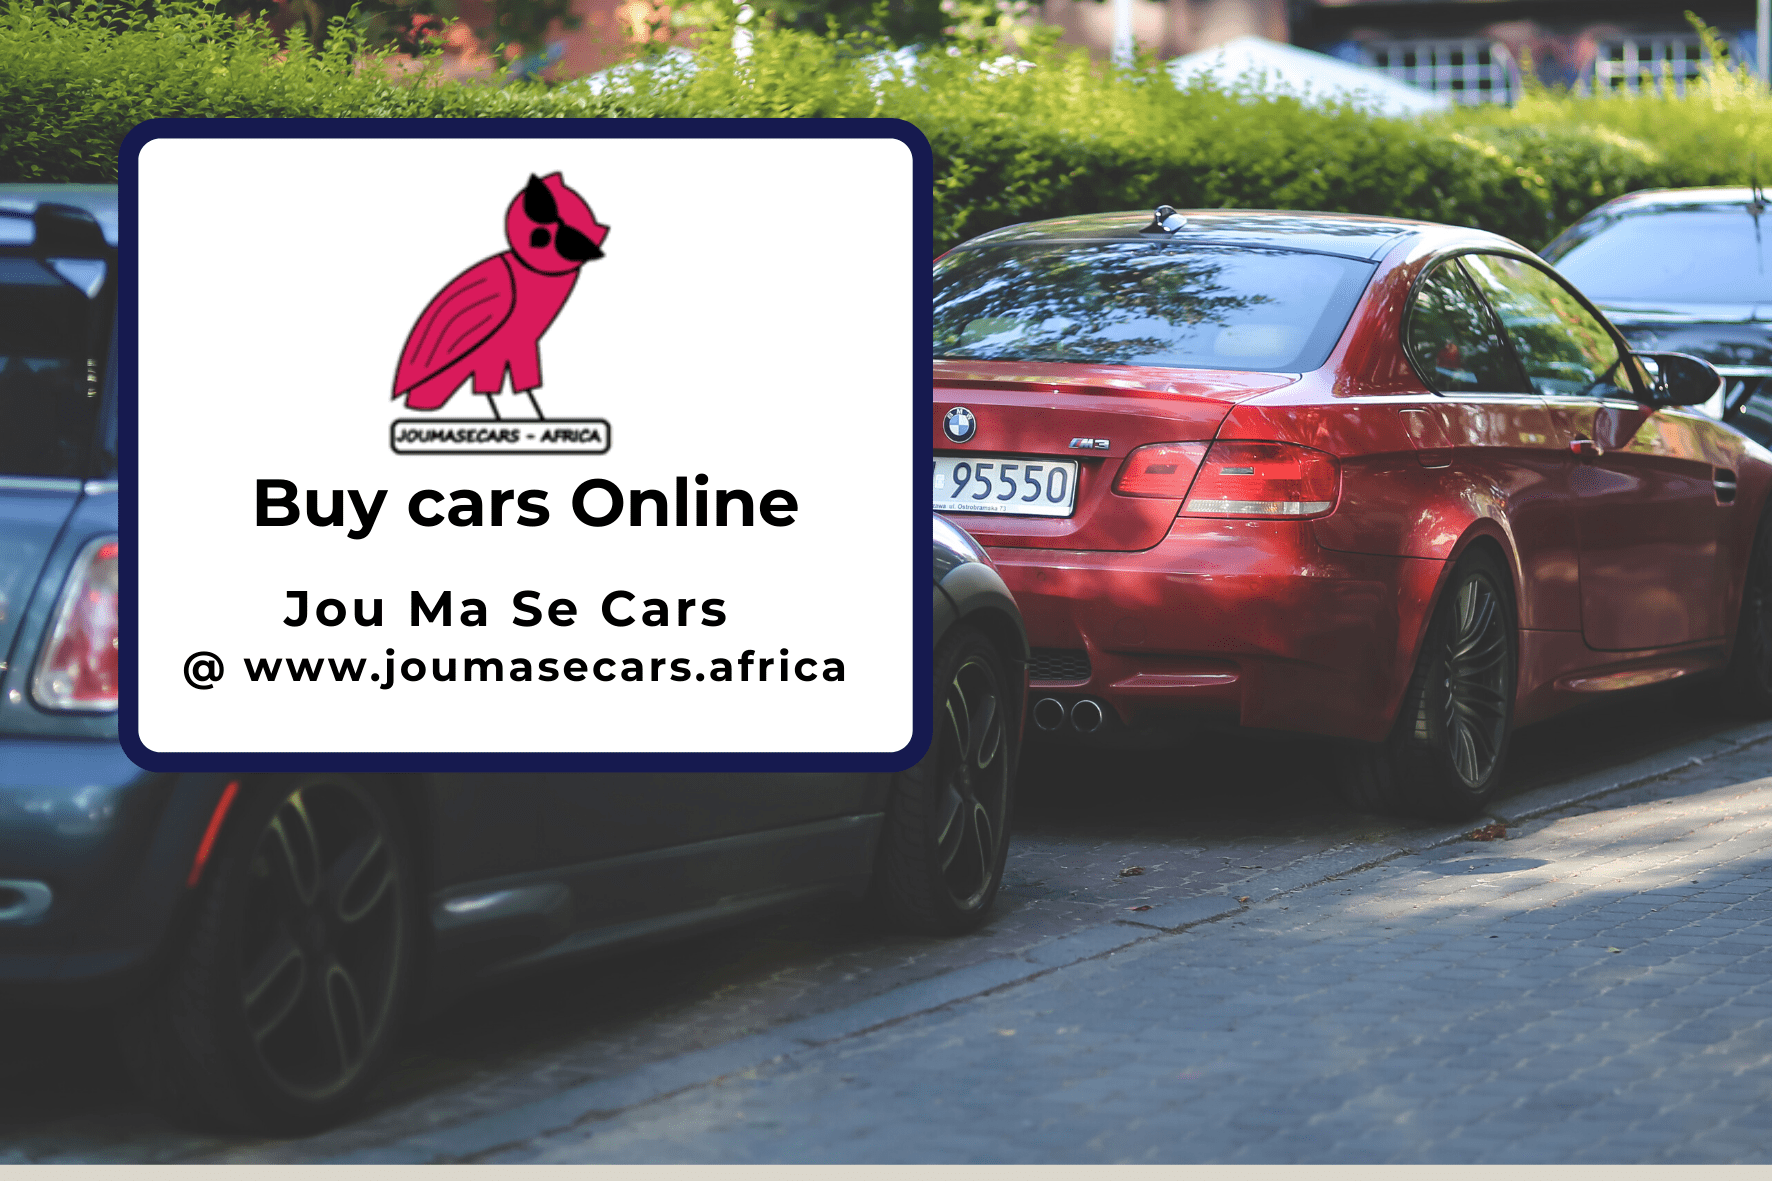 Sell cars online south africa